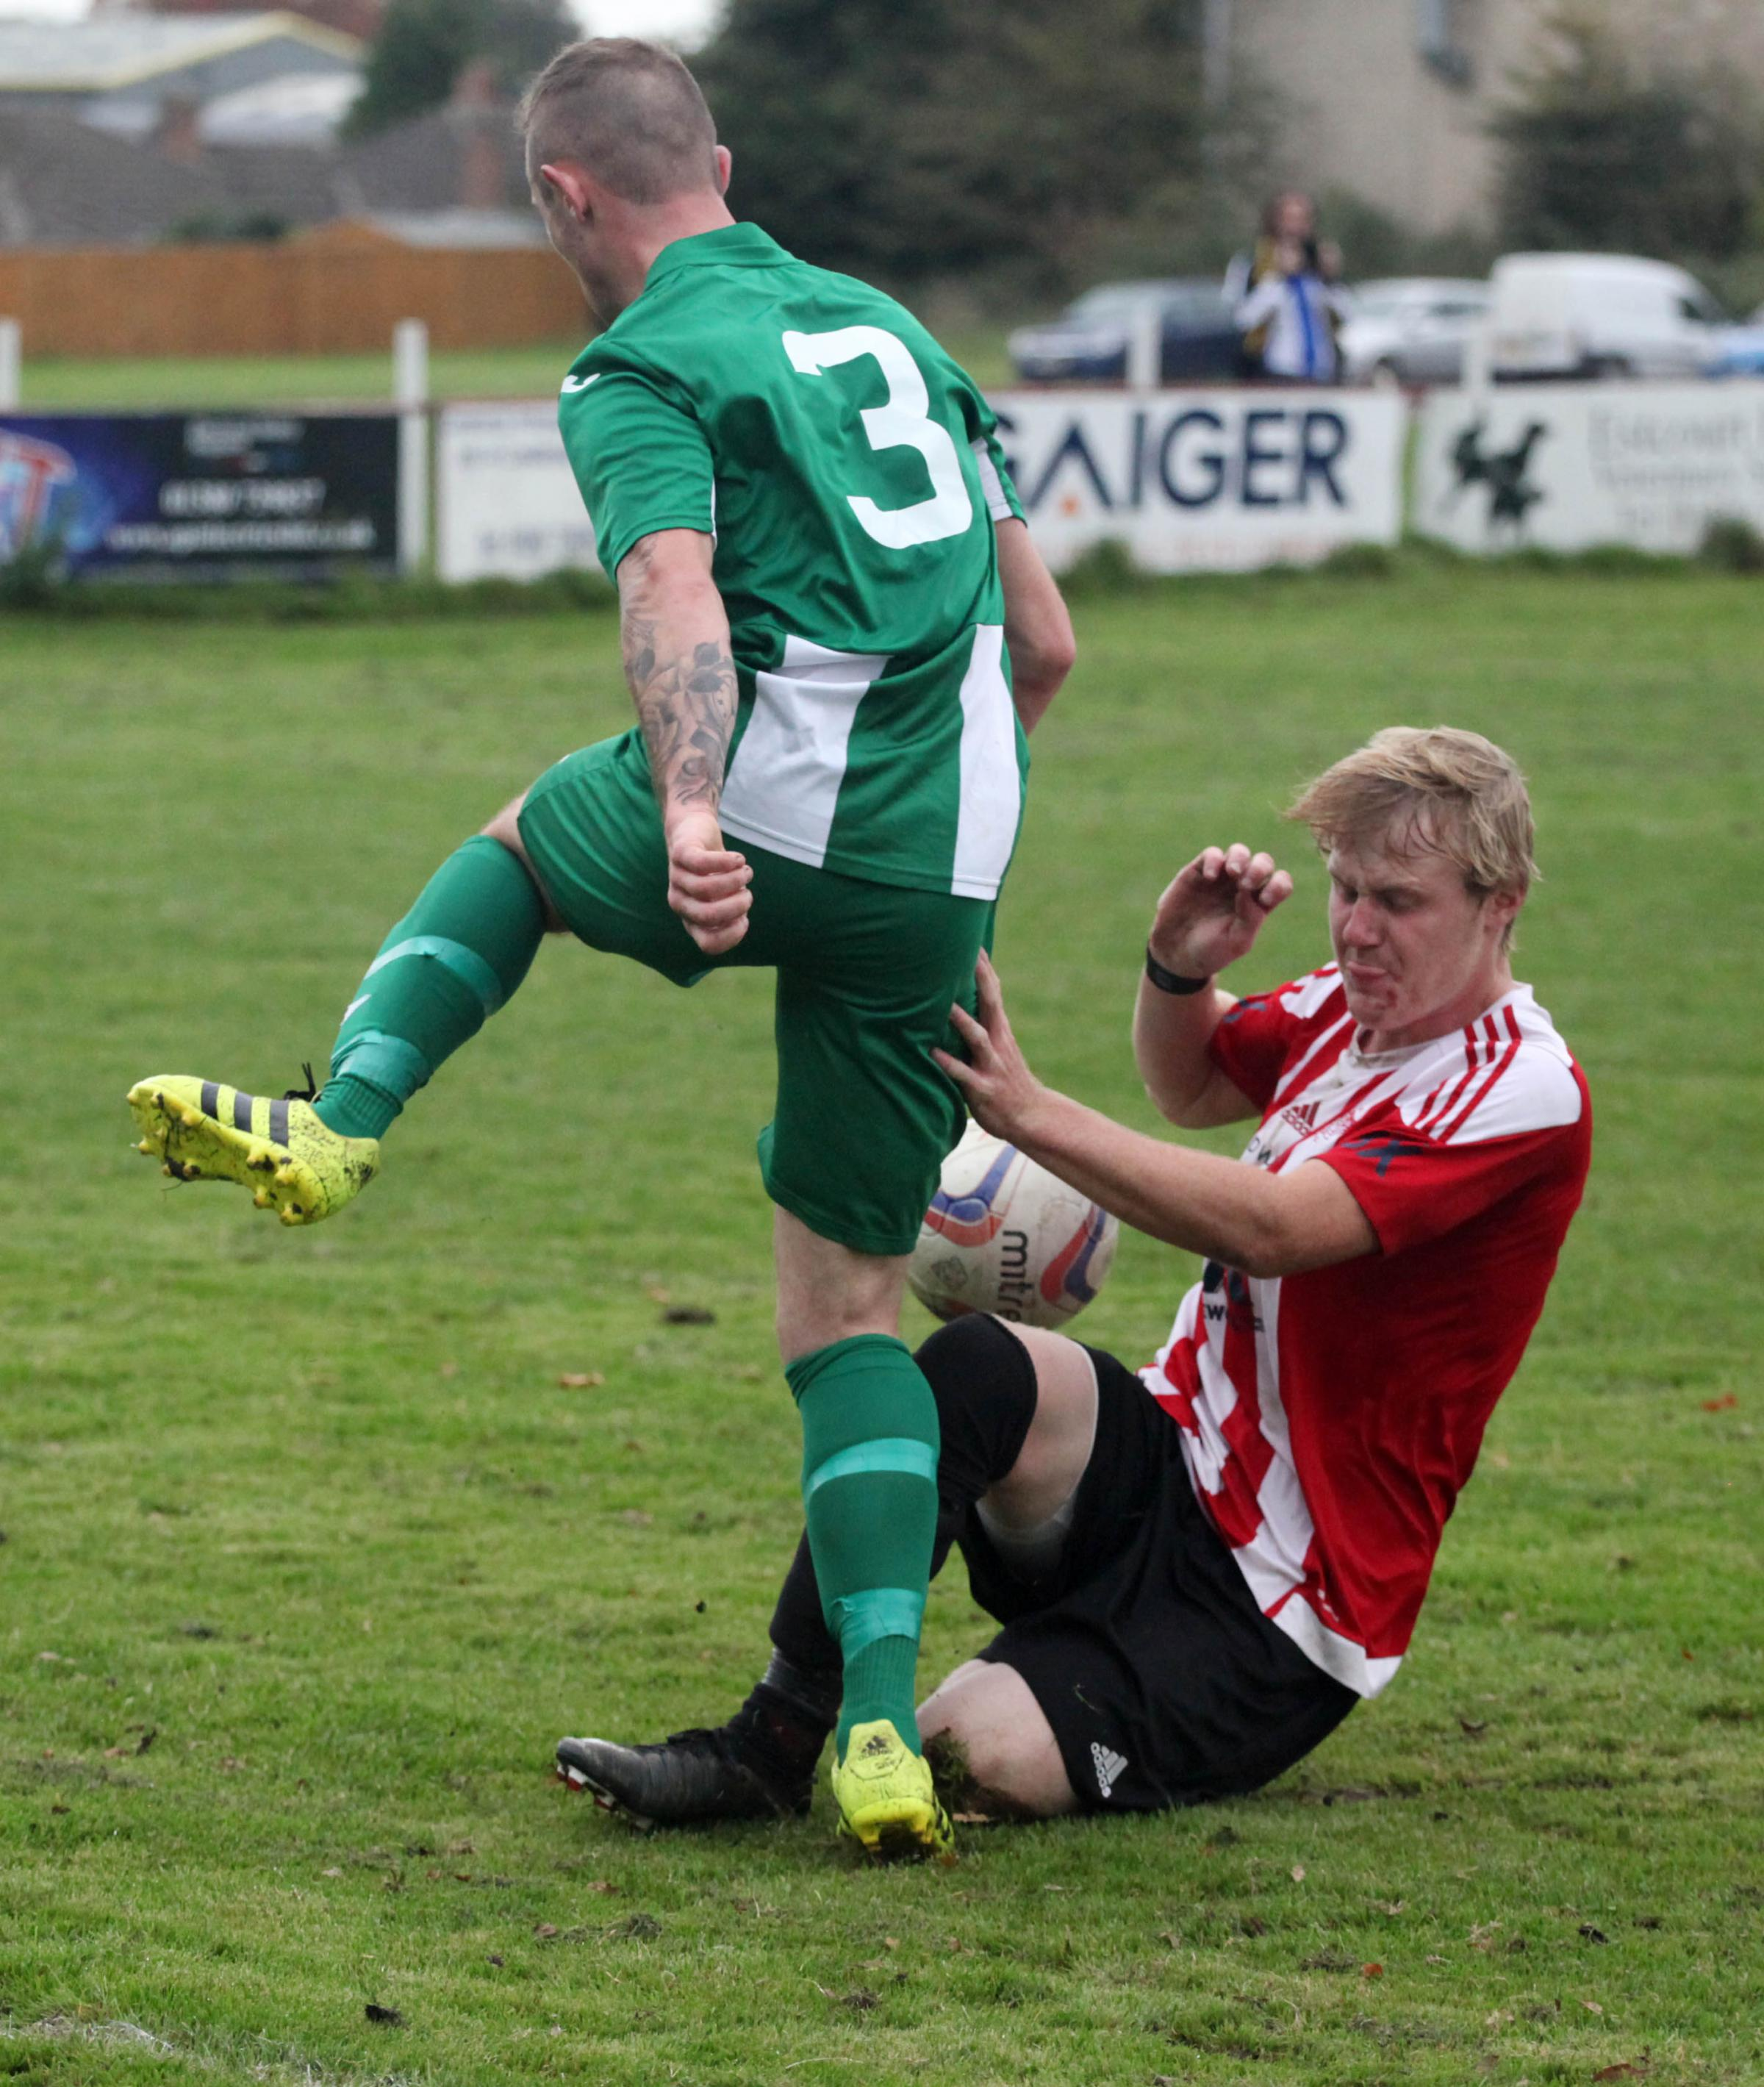 Devizes Town's Jamie Walters (red) gets in a tackle during his side's win over Wincanton Town on Saturday (Picture: VICKY SCIPIO)